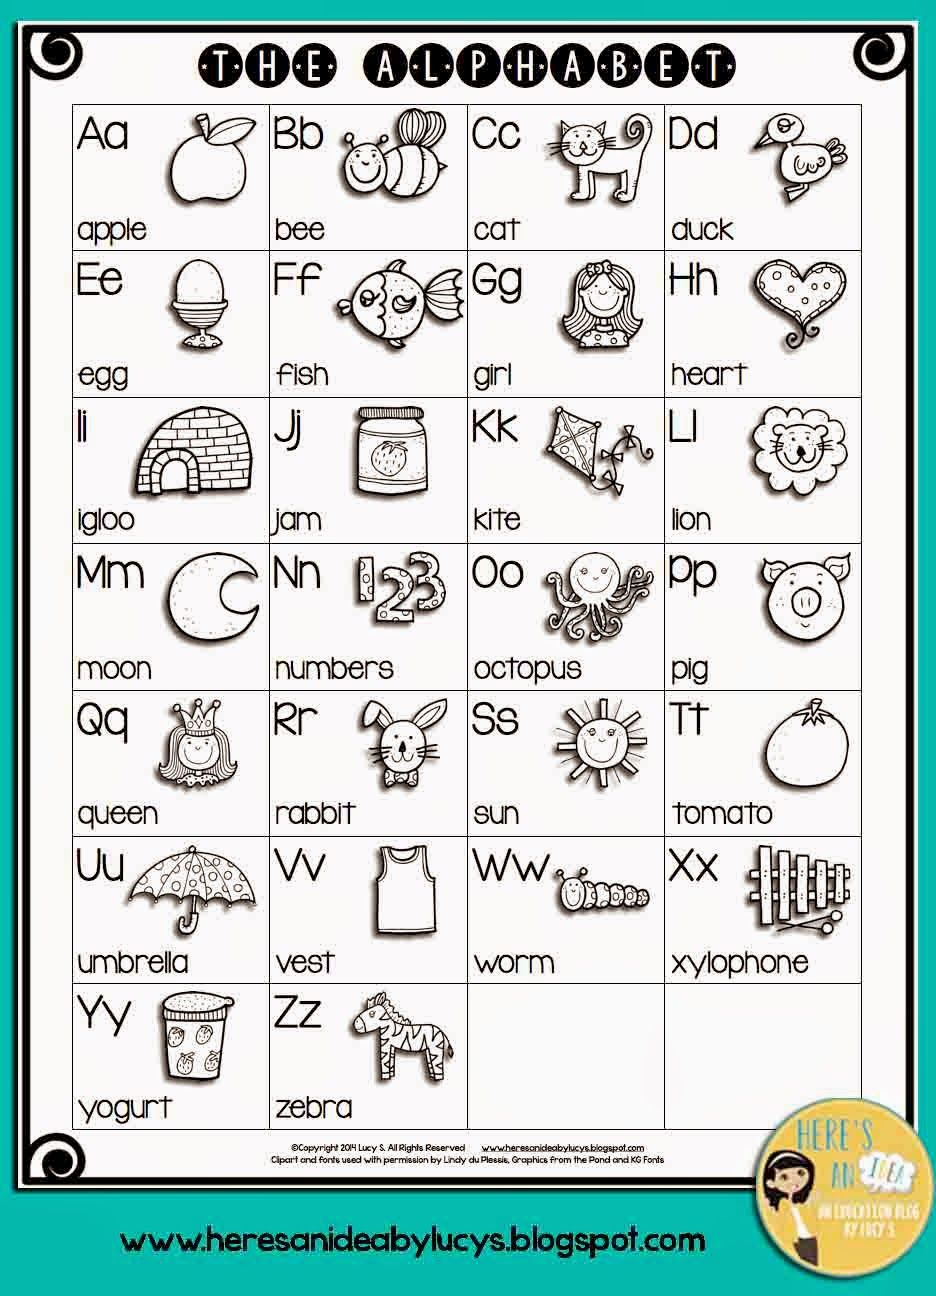 Worksheet Alphabet Charts For Kindergarten kindergarten writing tips for the beginning of year charts free bw english alphabet chart have kids color pictures and keep this for